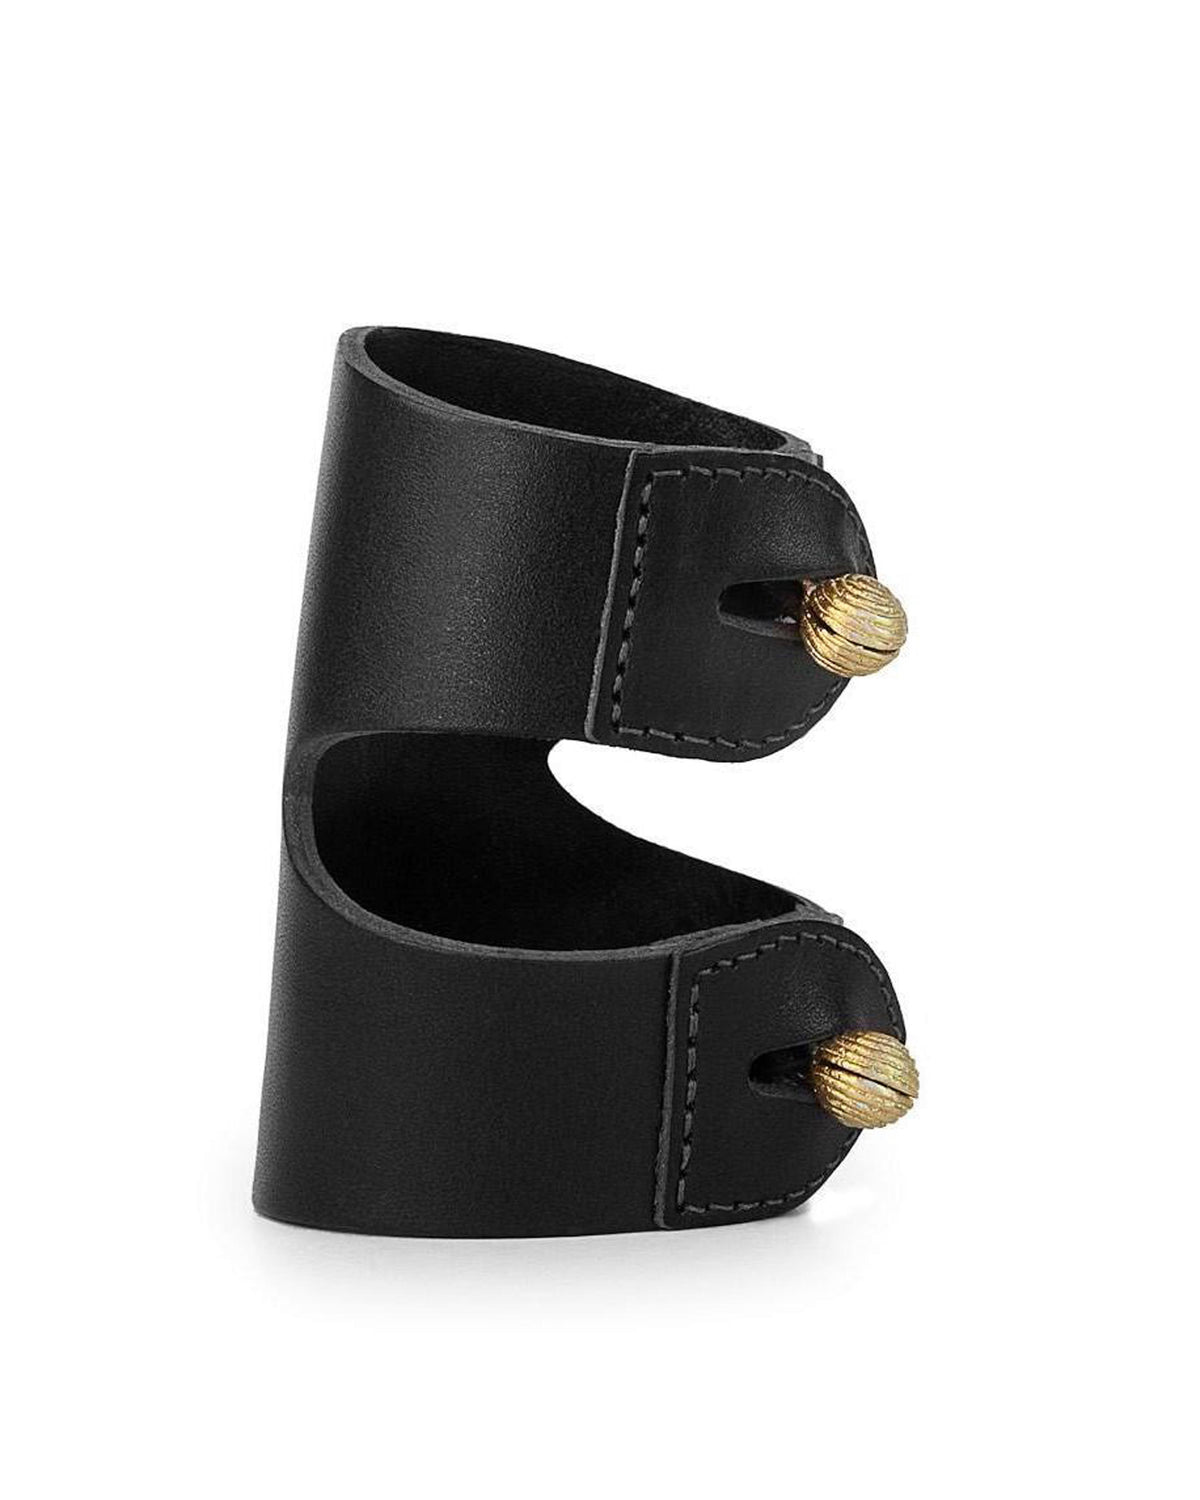 CAGANCHO CUFF in Black Napa